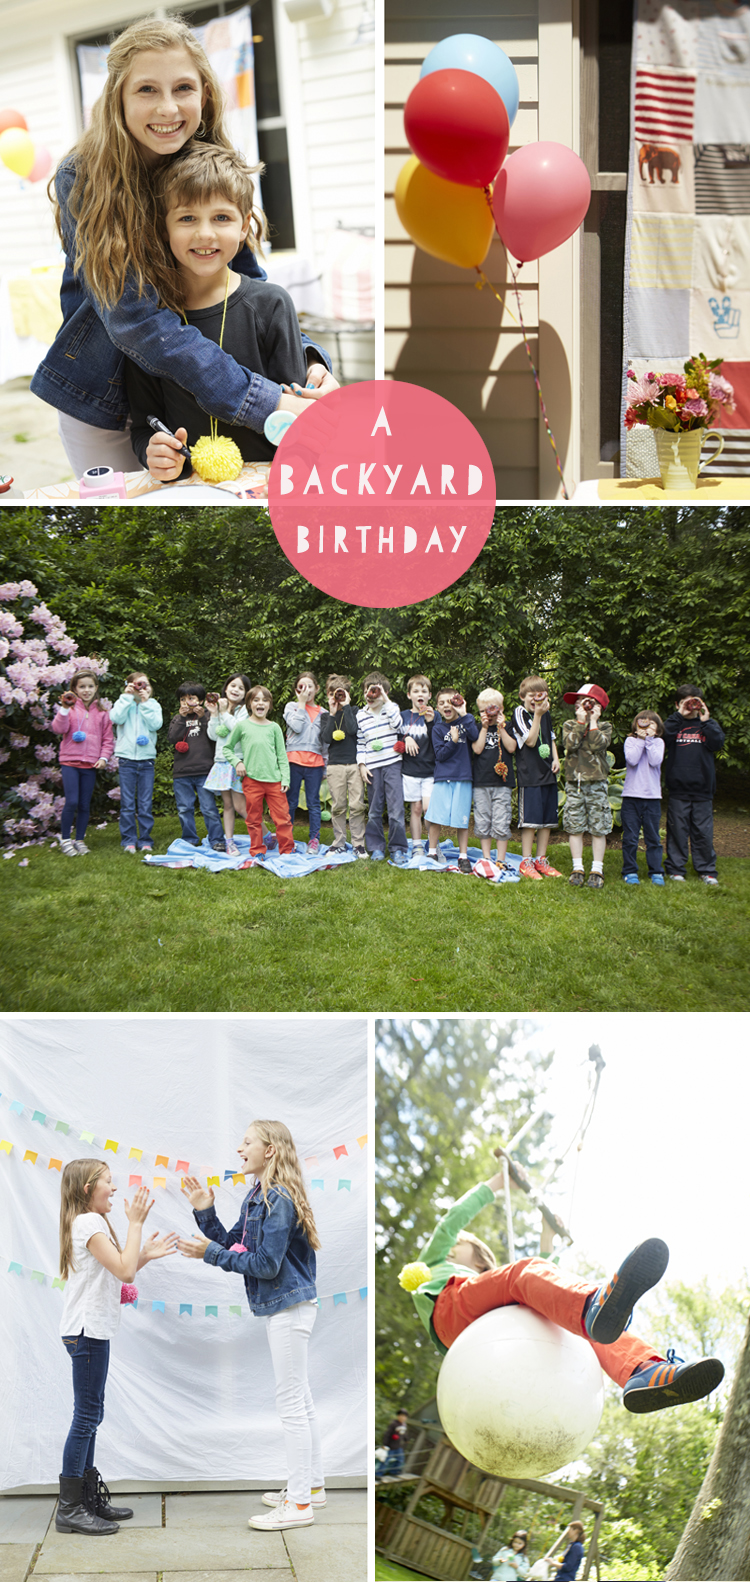 A Backyard Birthday